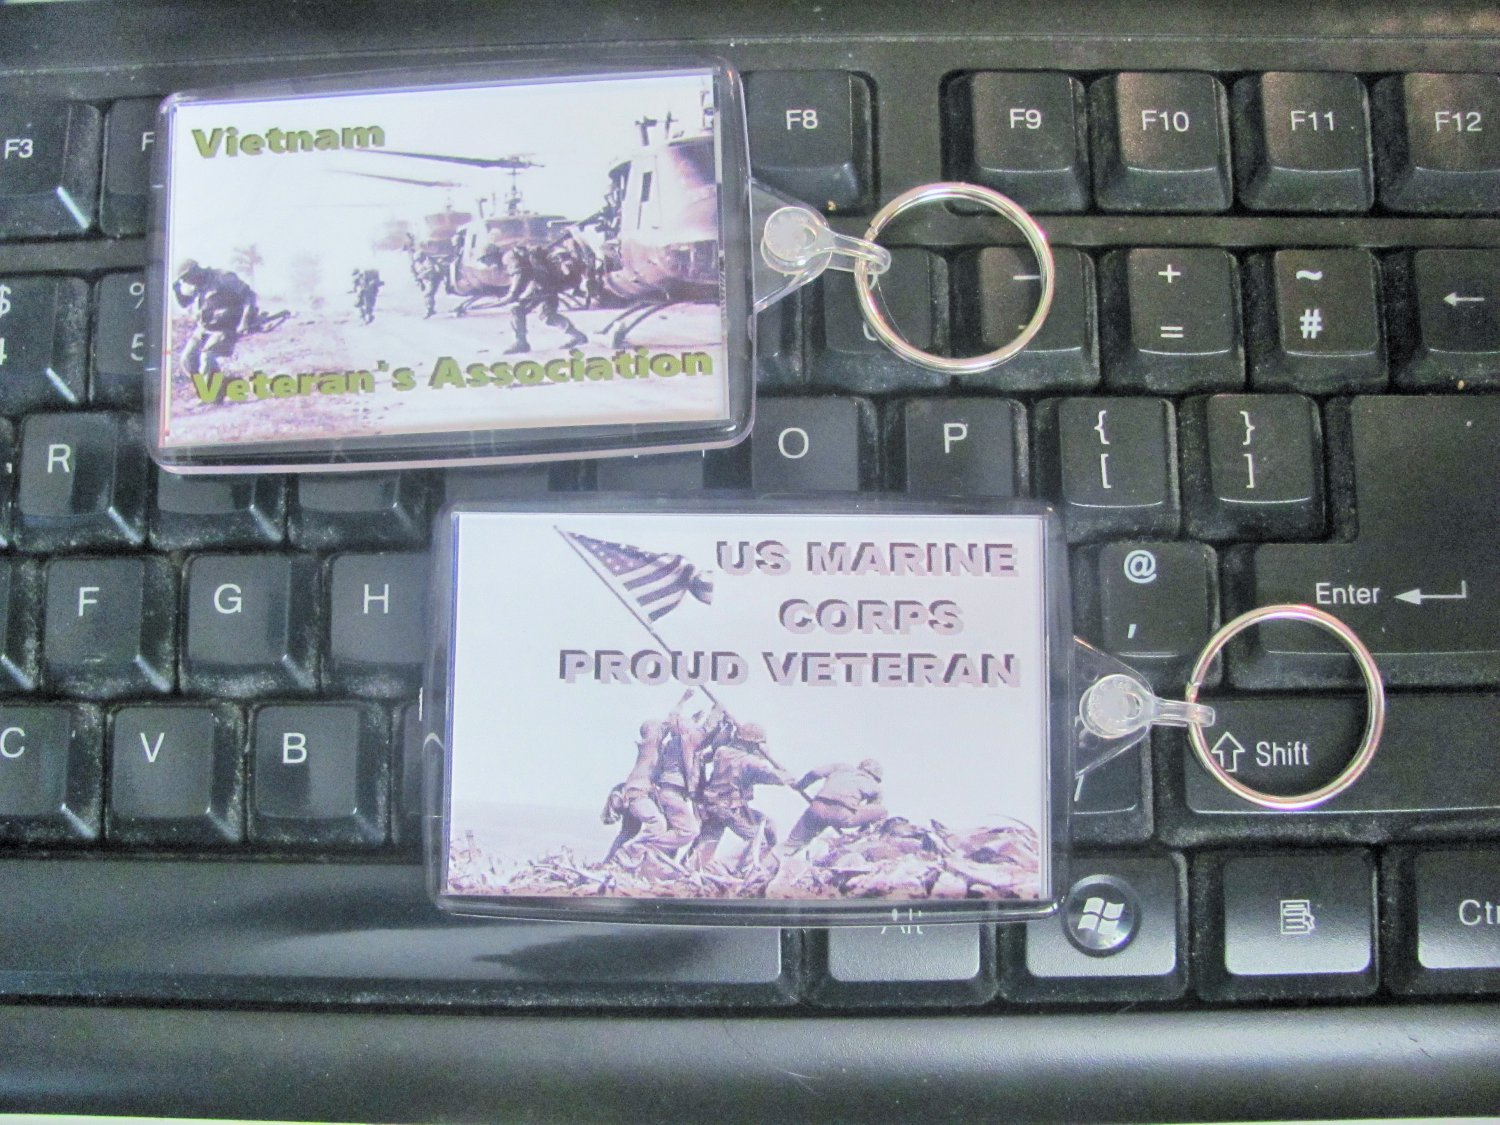 Vietnam Veterans key chains, US Marines key chain, large size clearly defined keepsake